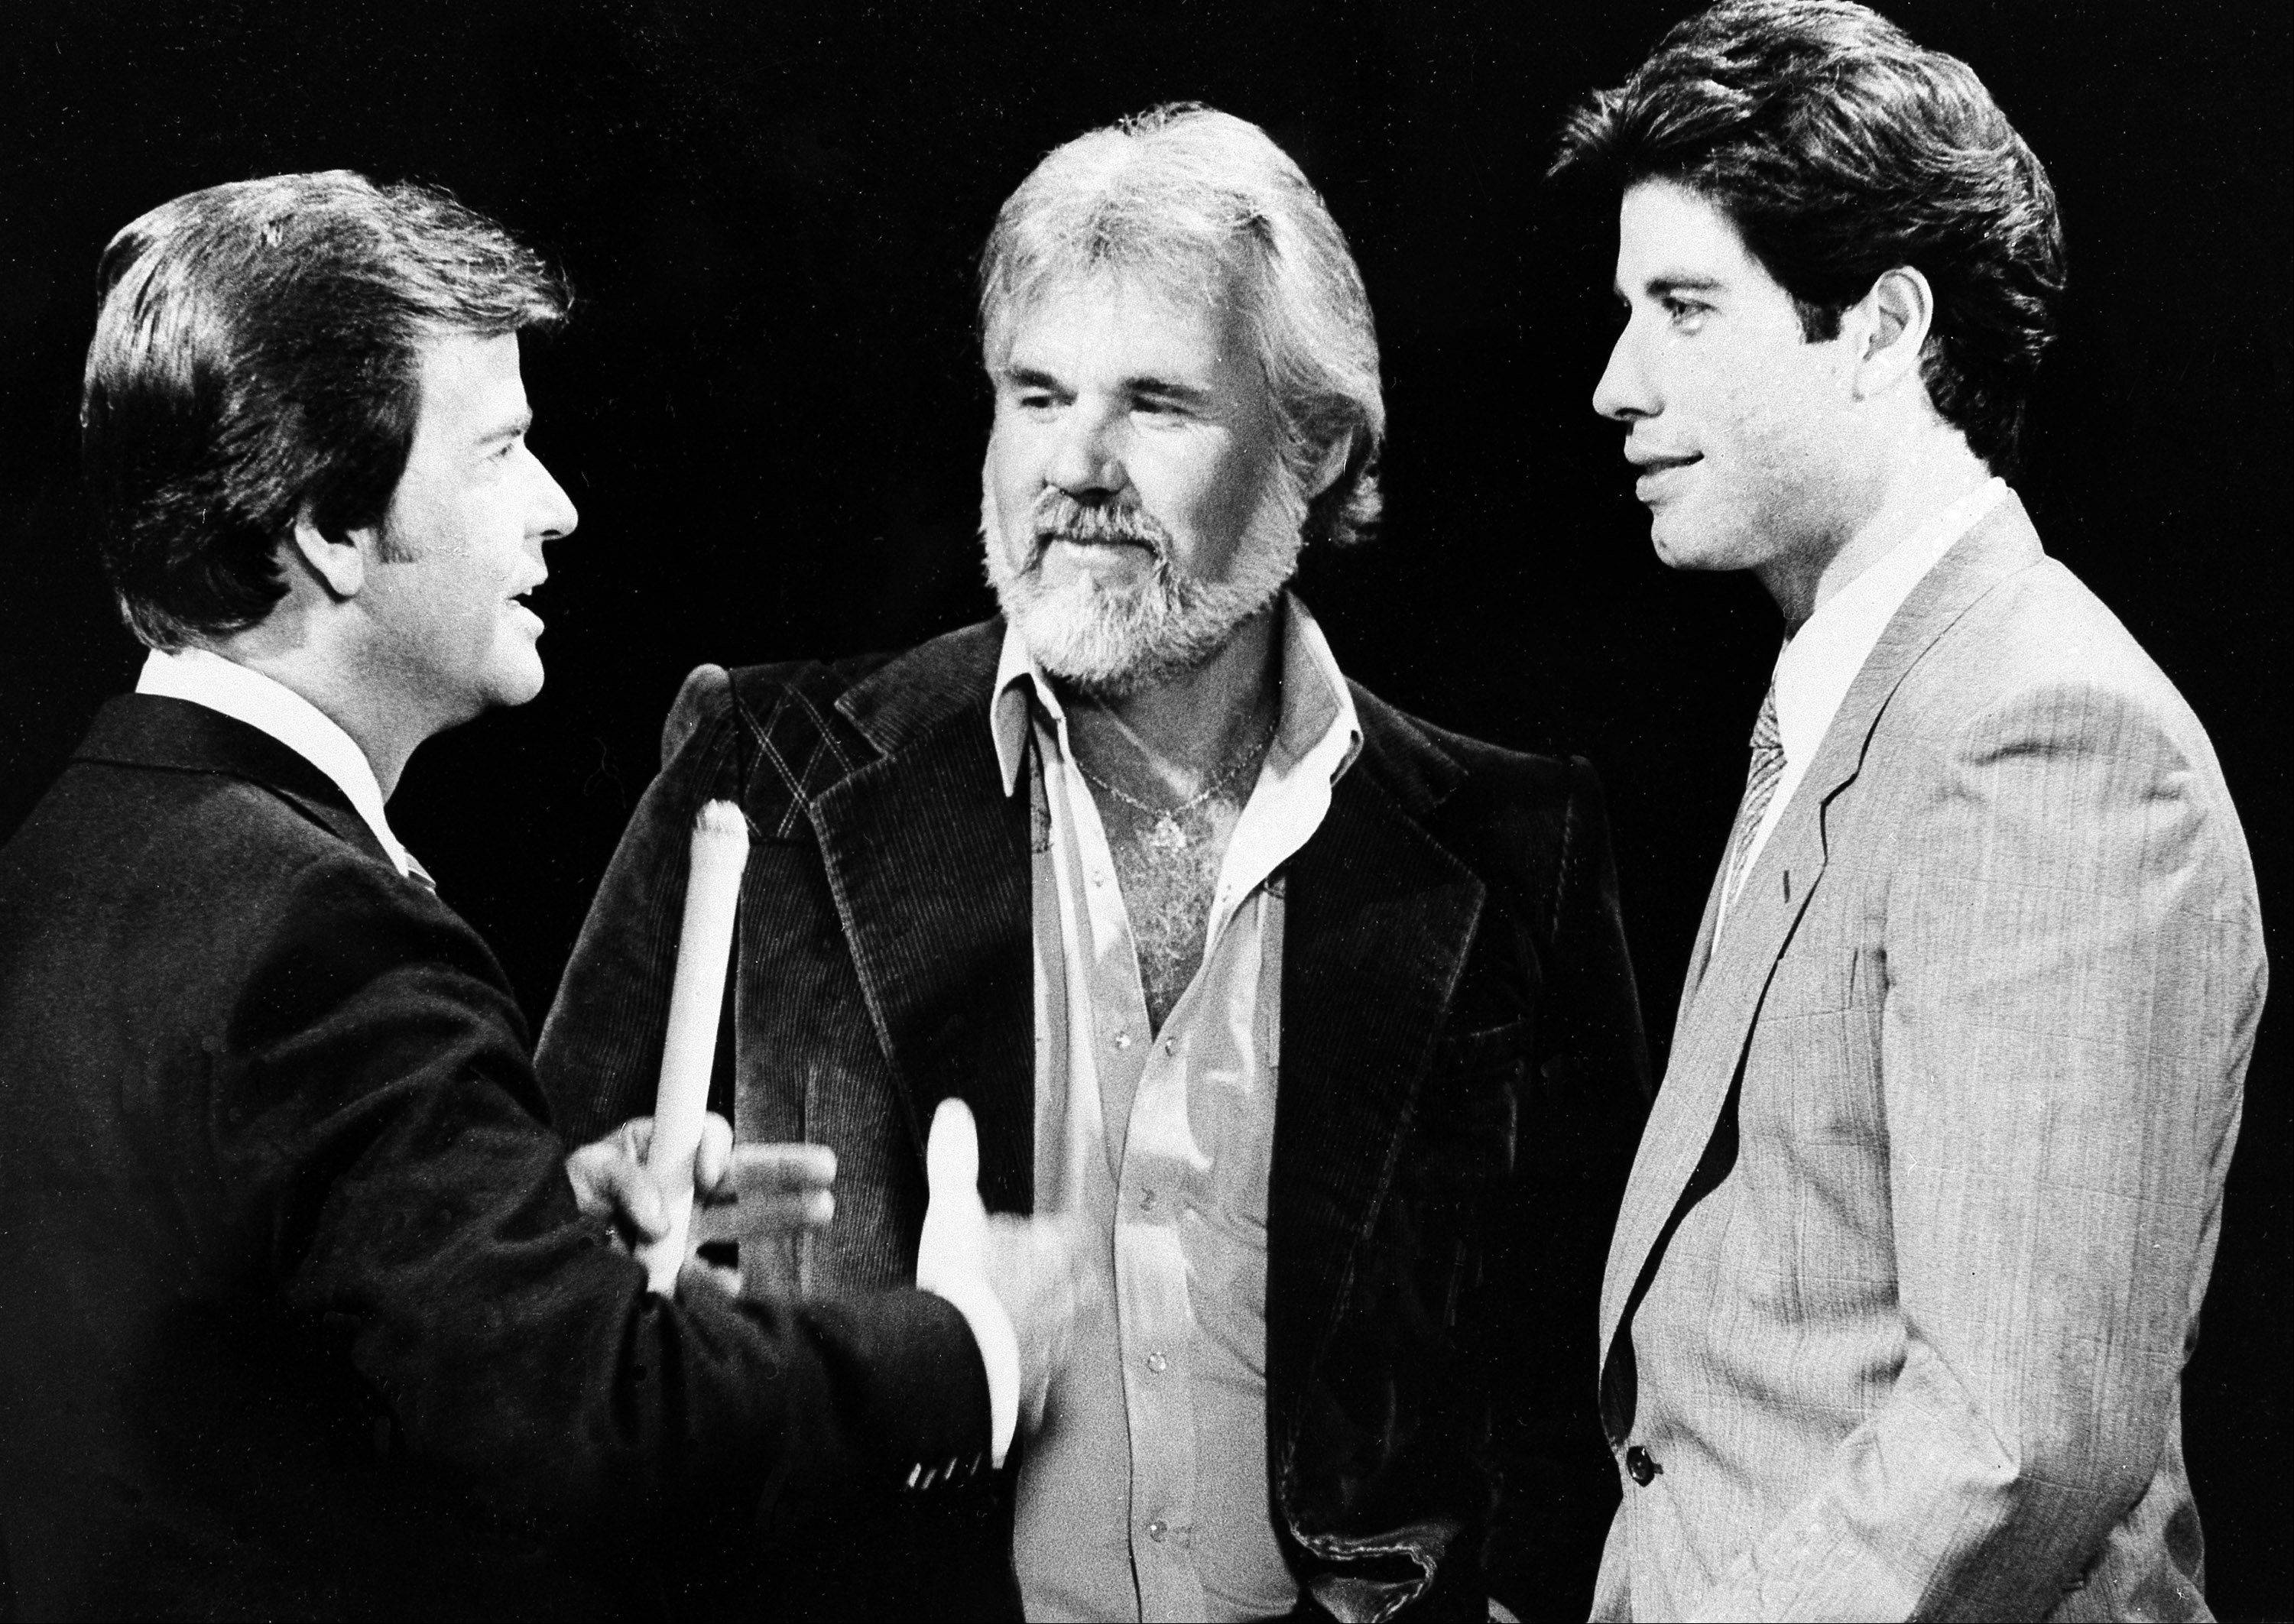 """American Bandstand"" host Dick Clark, left, reminisces with Kenny Rogers, center, and John Travolta about their early music careers during taping recently of "" American Bandstand's 30th Anniversary Special."" October 27, 1981."